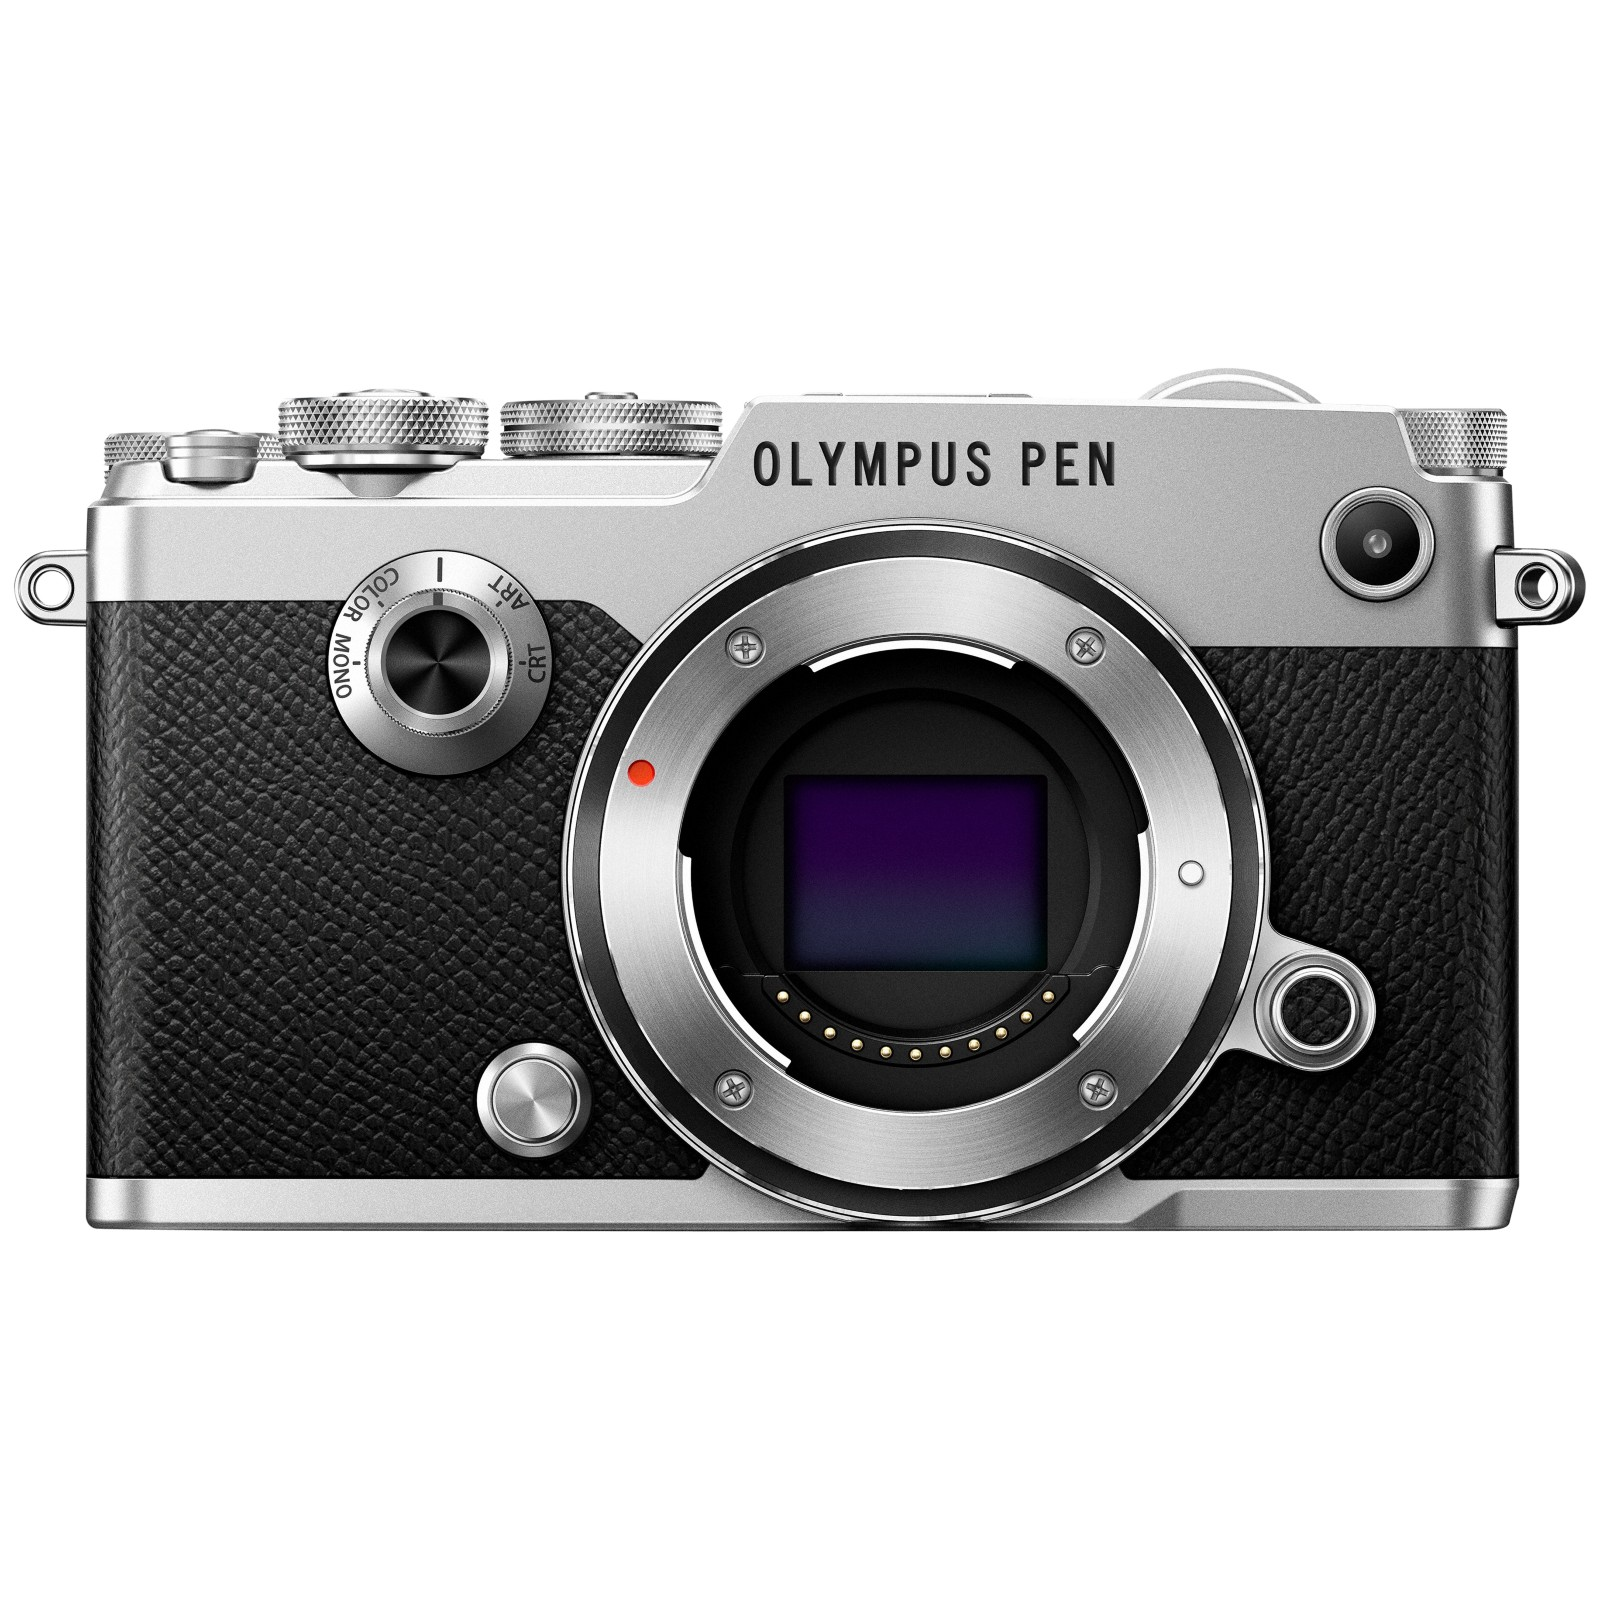 Olympus Pen F Compact System Camera